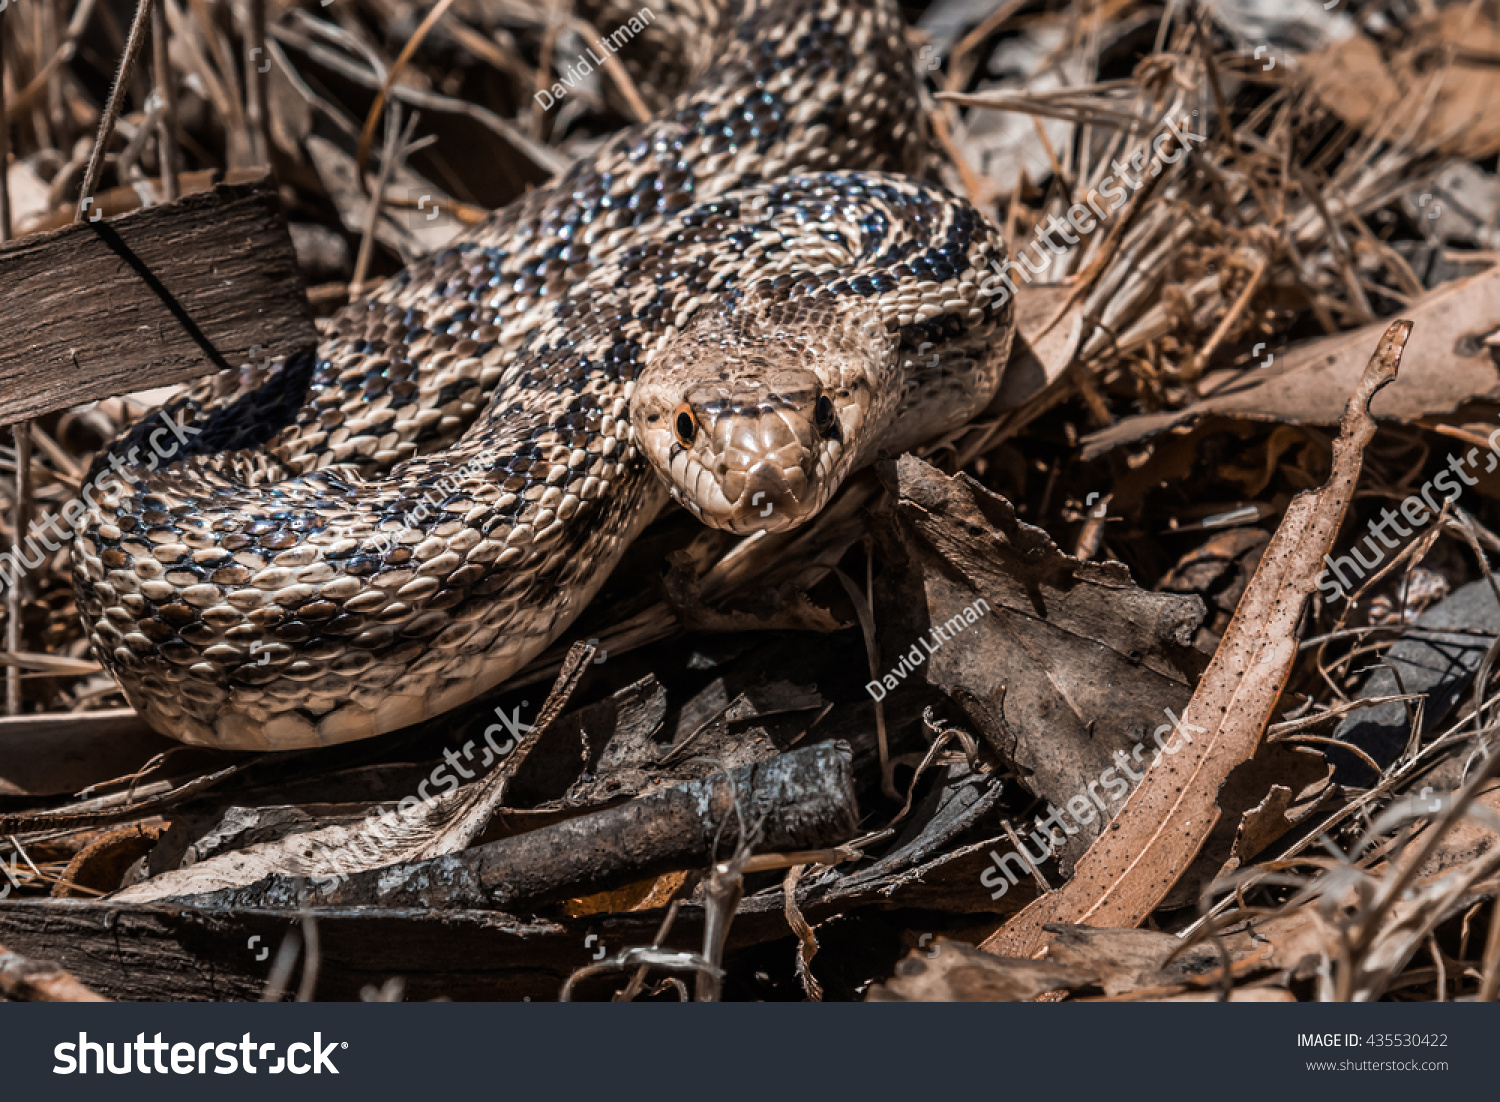 stock-photo-a-pacific-gopher-snake-pituophis-catenifer-is-poised-to-strike-in-the-hills-of-monterey-435530422.jpg